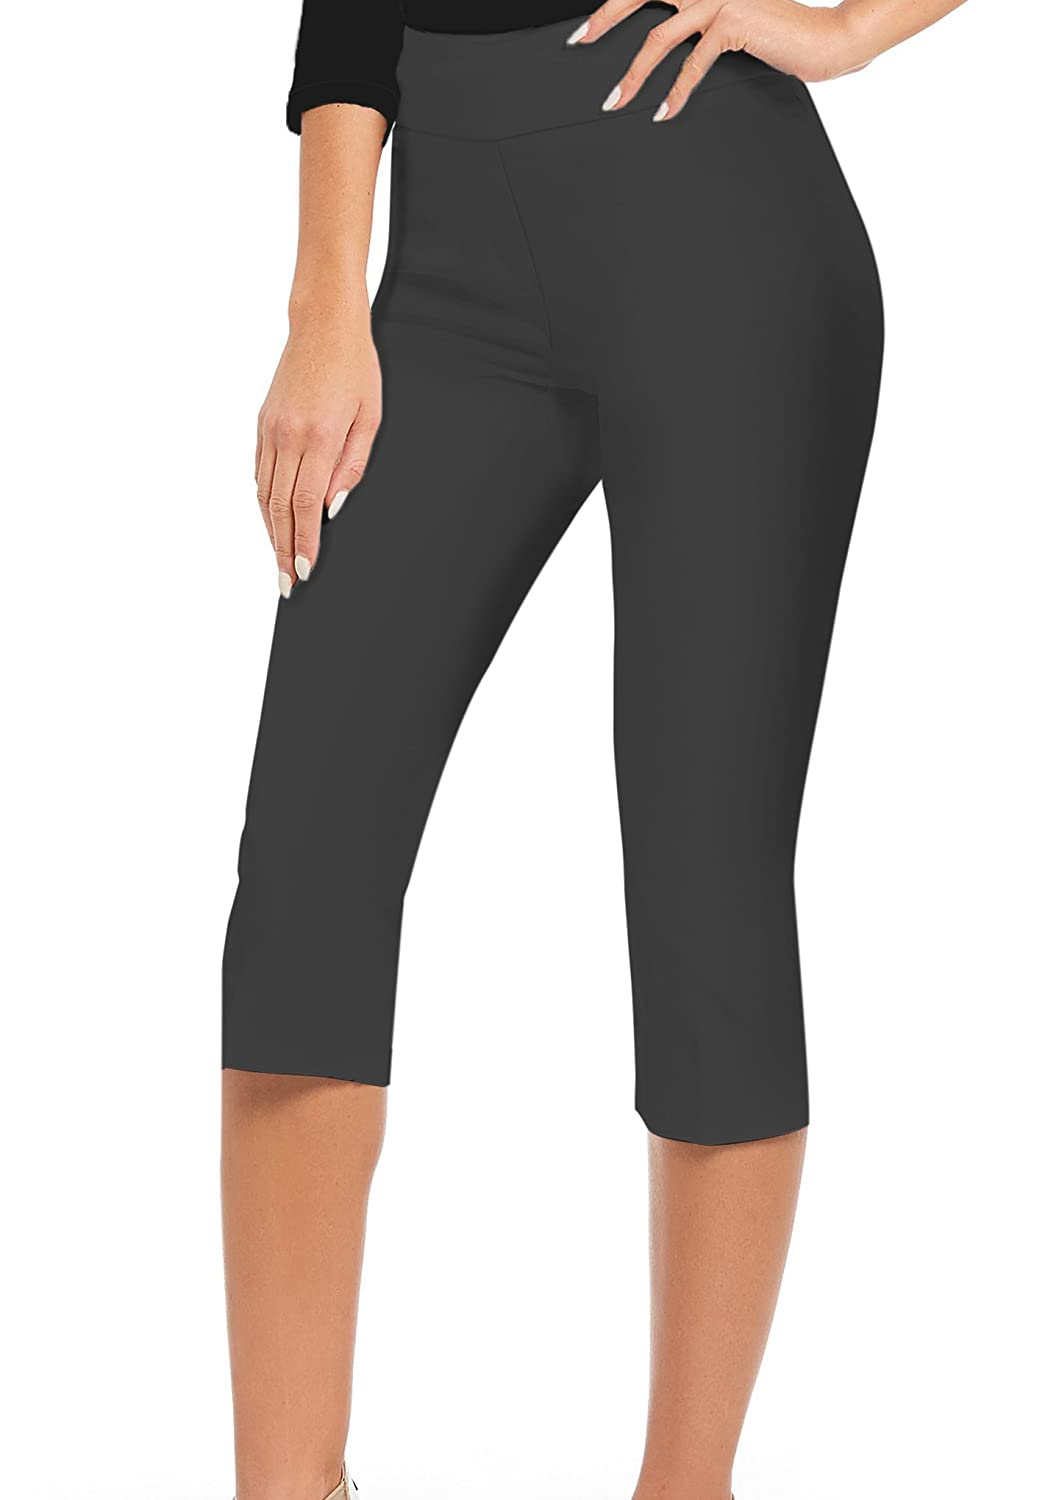 Charcoal HyBrid & Company Women Comfy Stretch Pull On Business Millennium Capri Pants